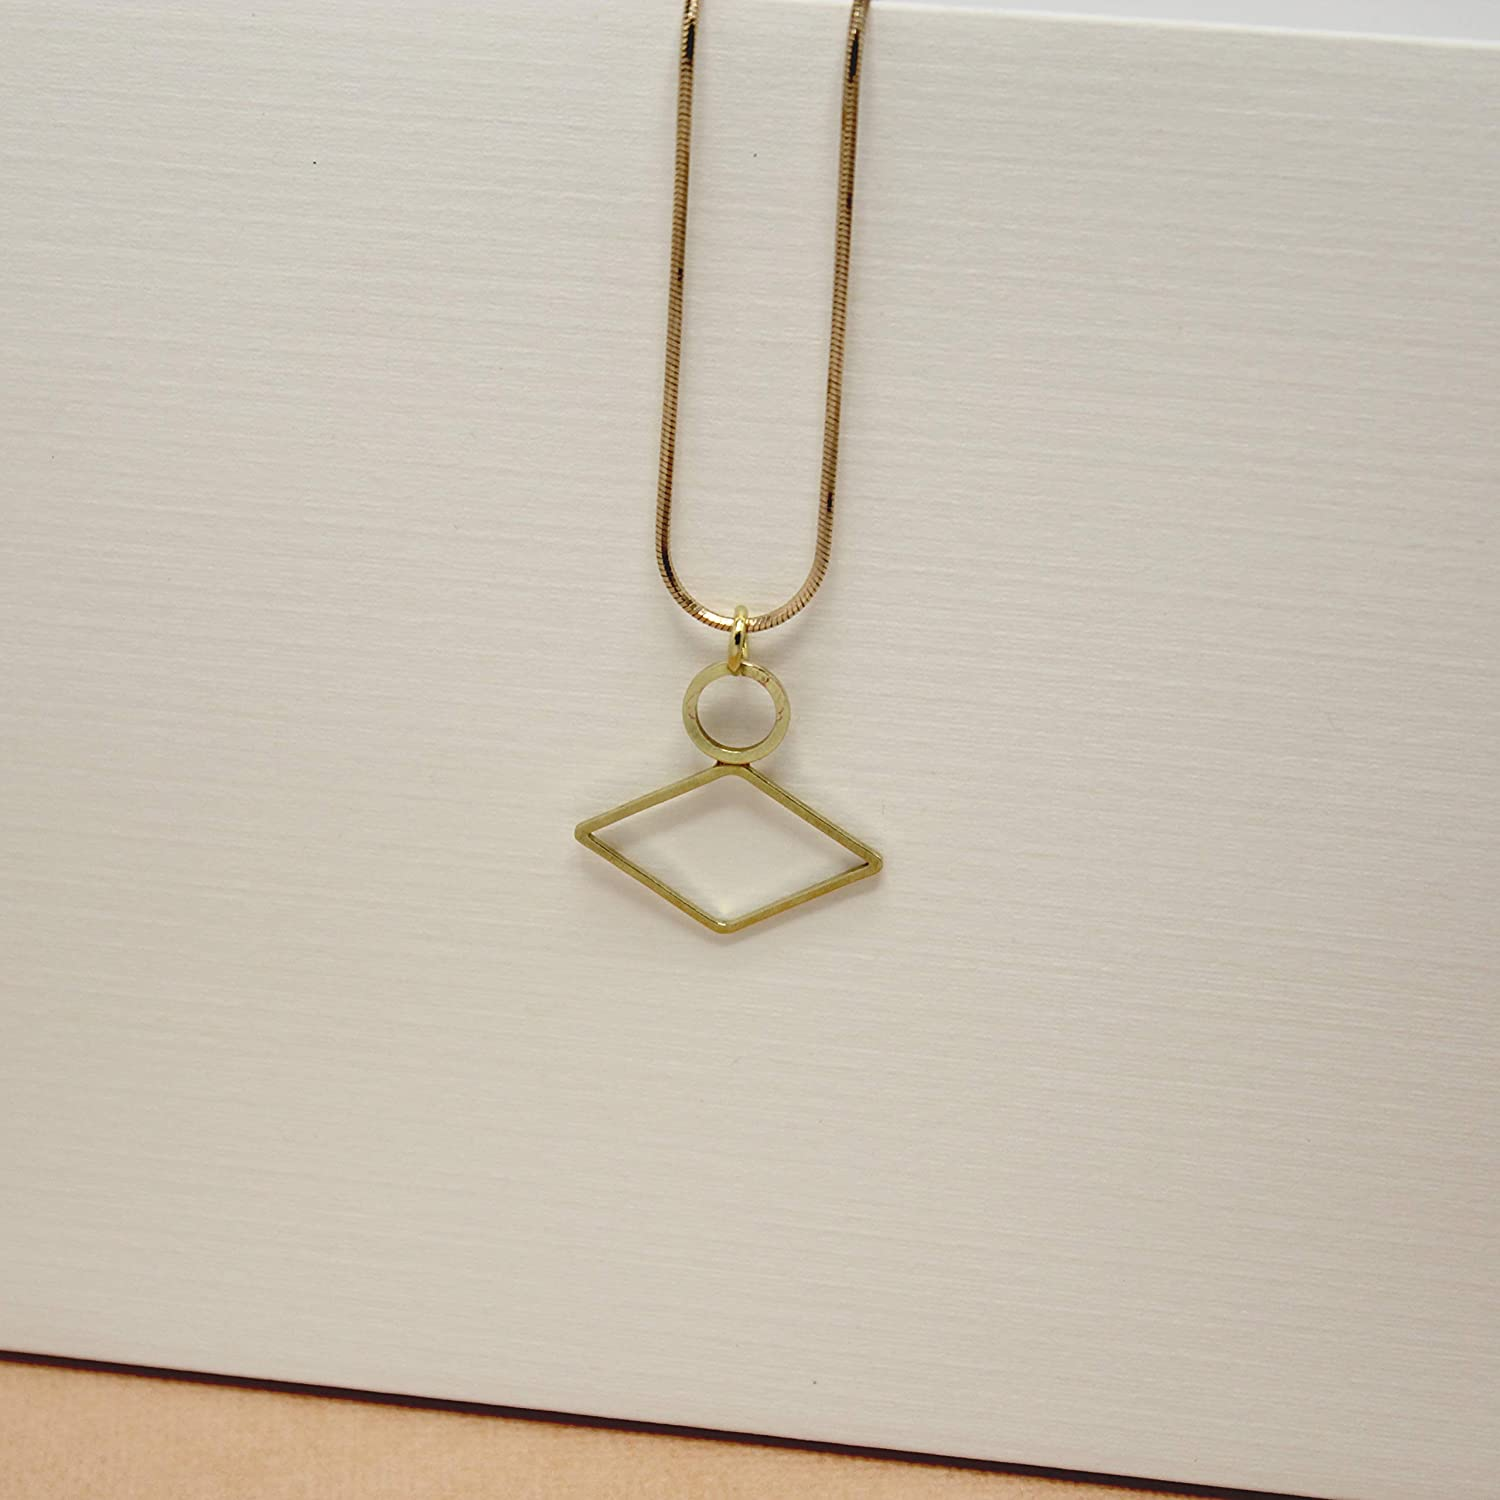 Mashallah Simple Dainty Delicate Geometric Necklace Gold Pendant